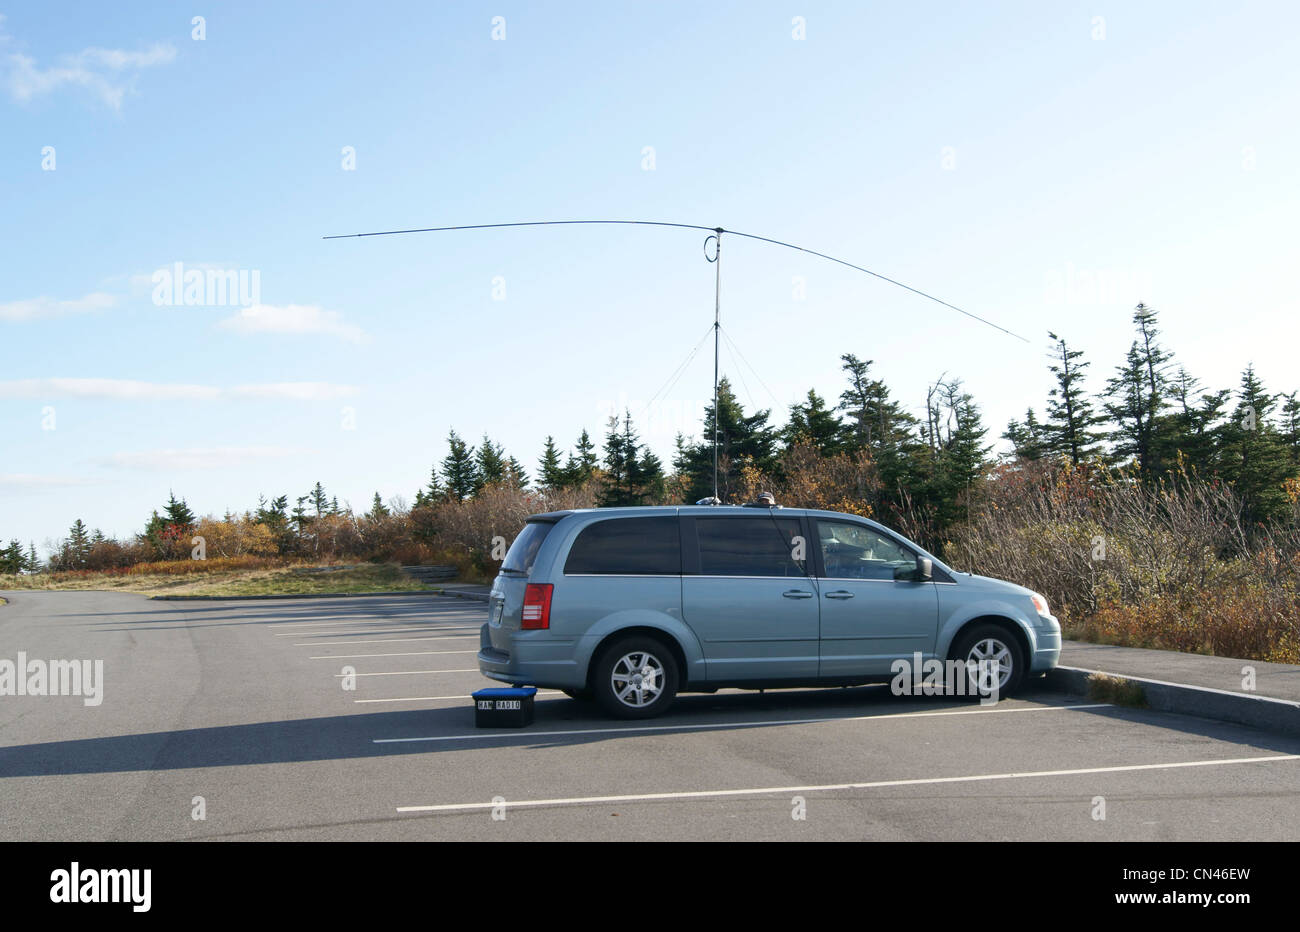 Car with ham radio (amateur radio) in a parking lot, Cadillac Mountain, Maine. - Stock Image